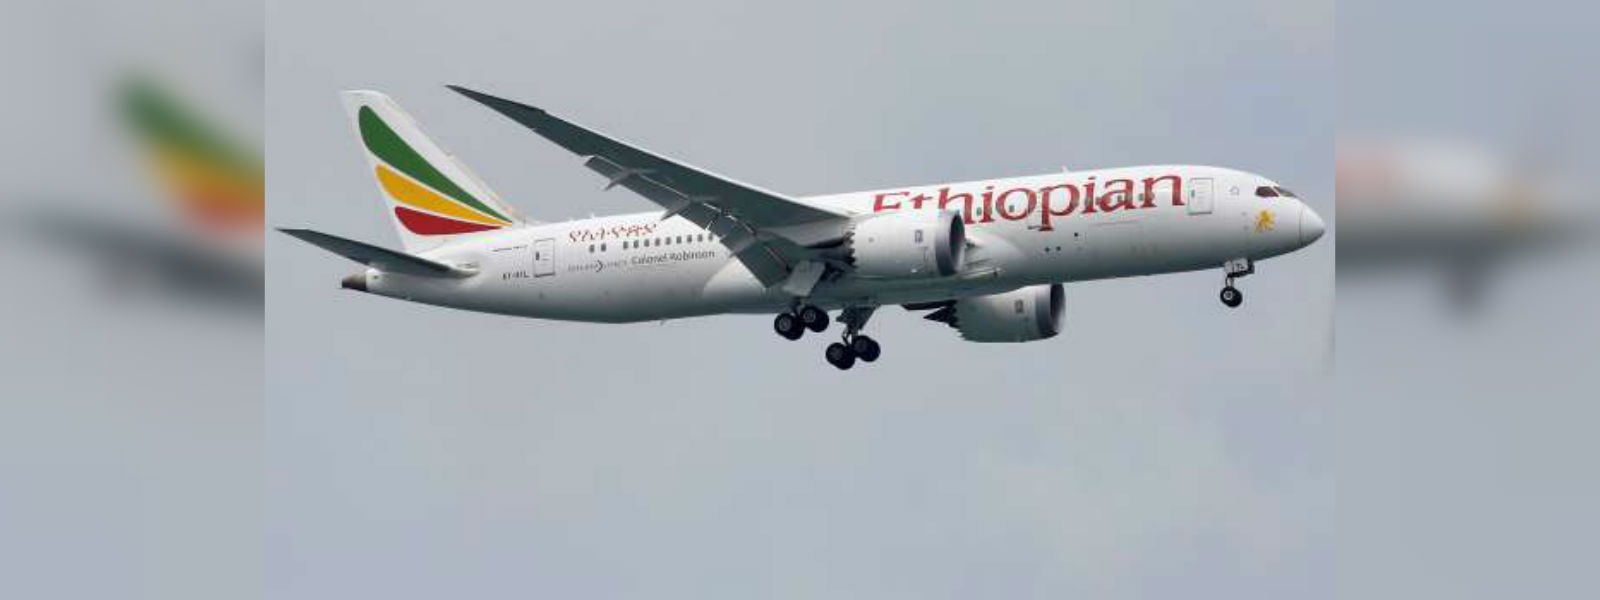 Ethiopian Airlines flight crashes killing 157